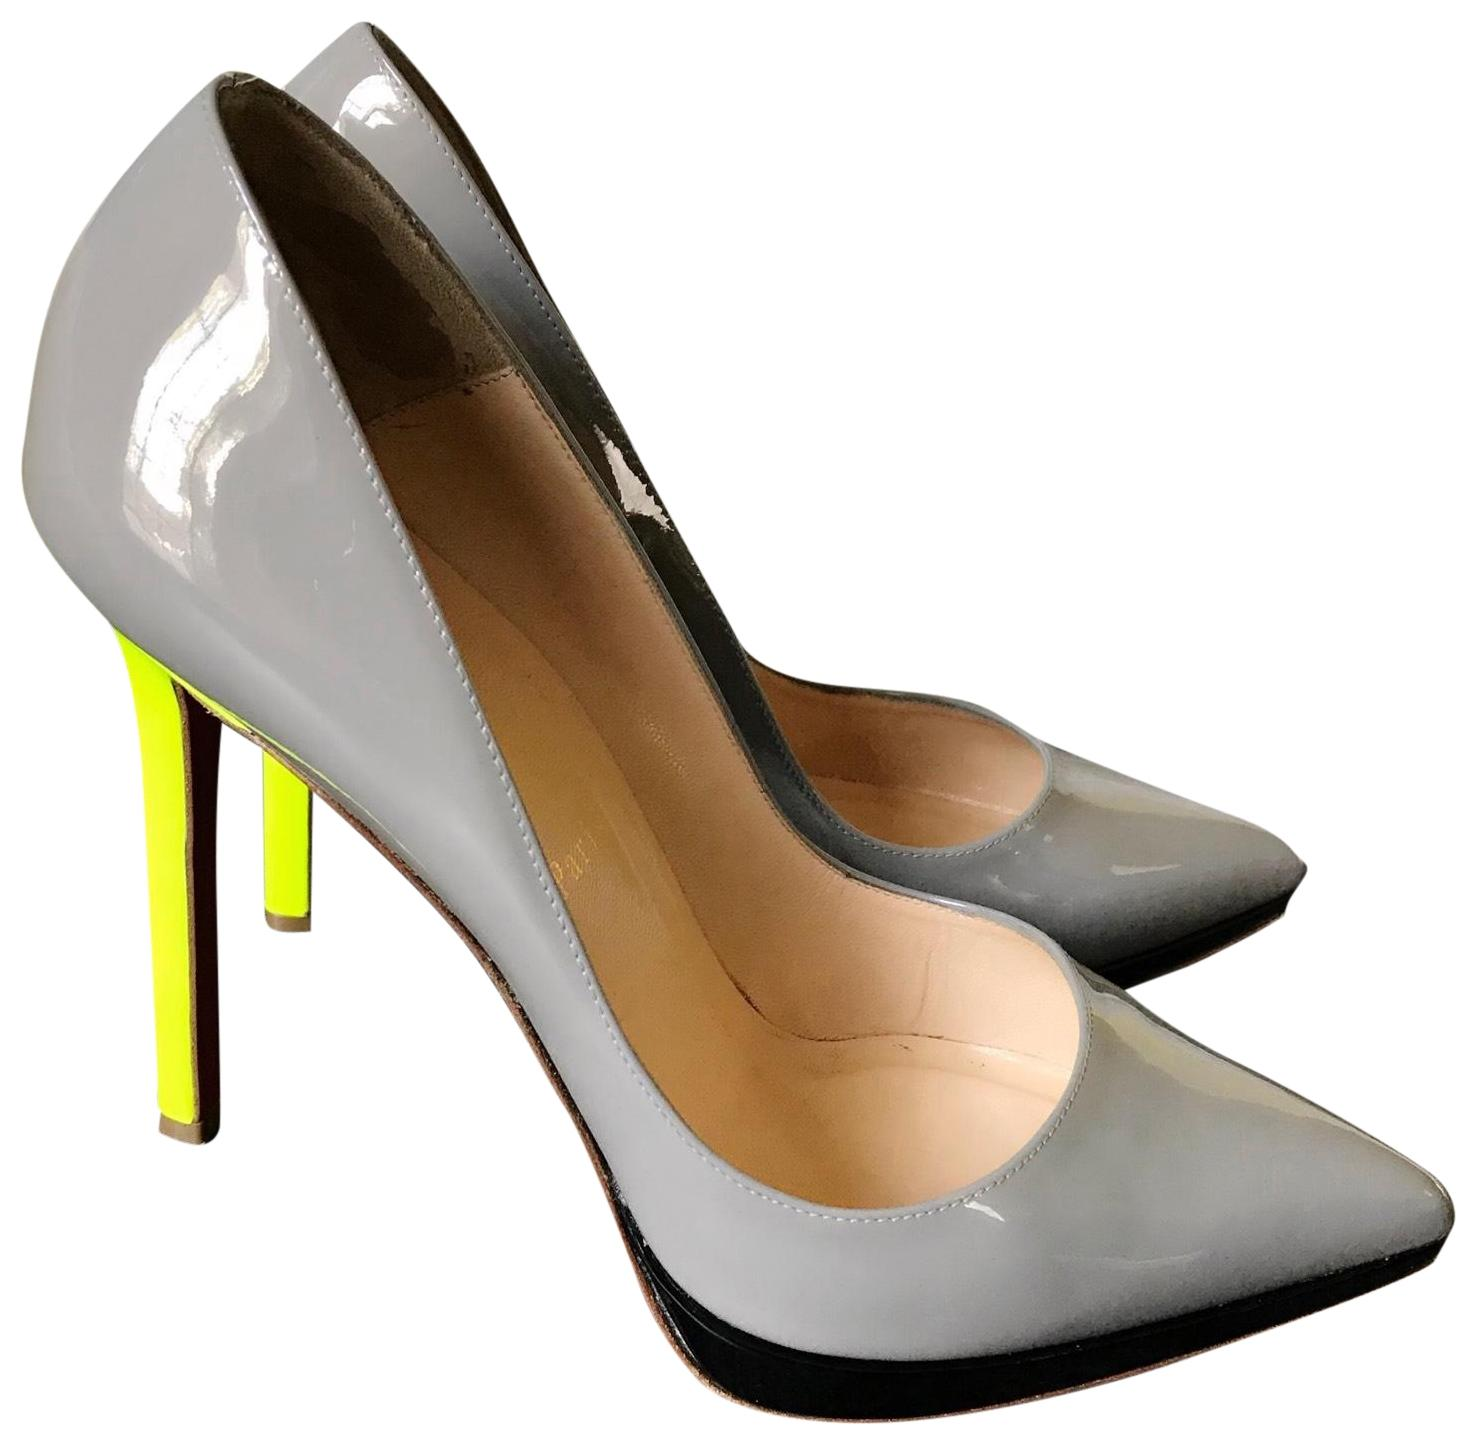 Christian Louboutin Grey & Black Patent Pigalle Plato 120mm Florescent Matte Pumps Size US 9 Regular (M, B)